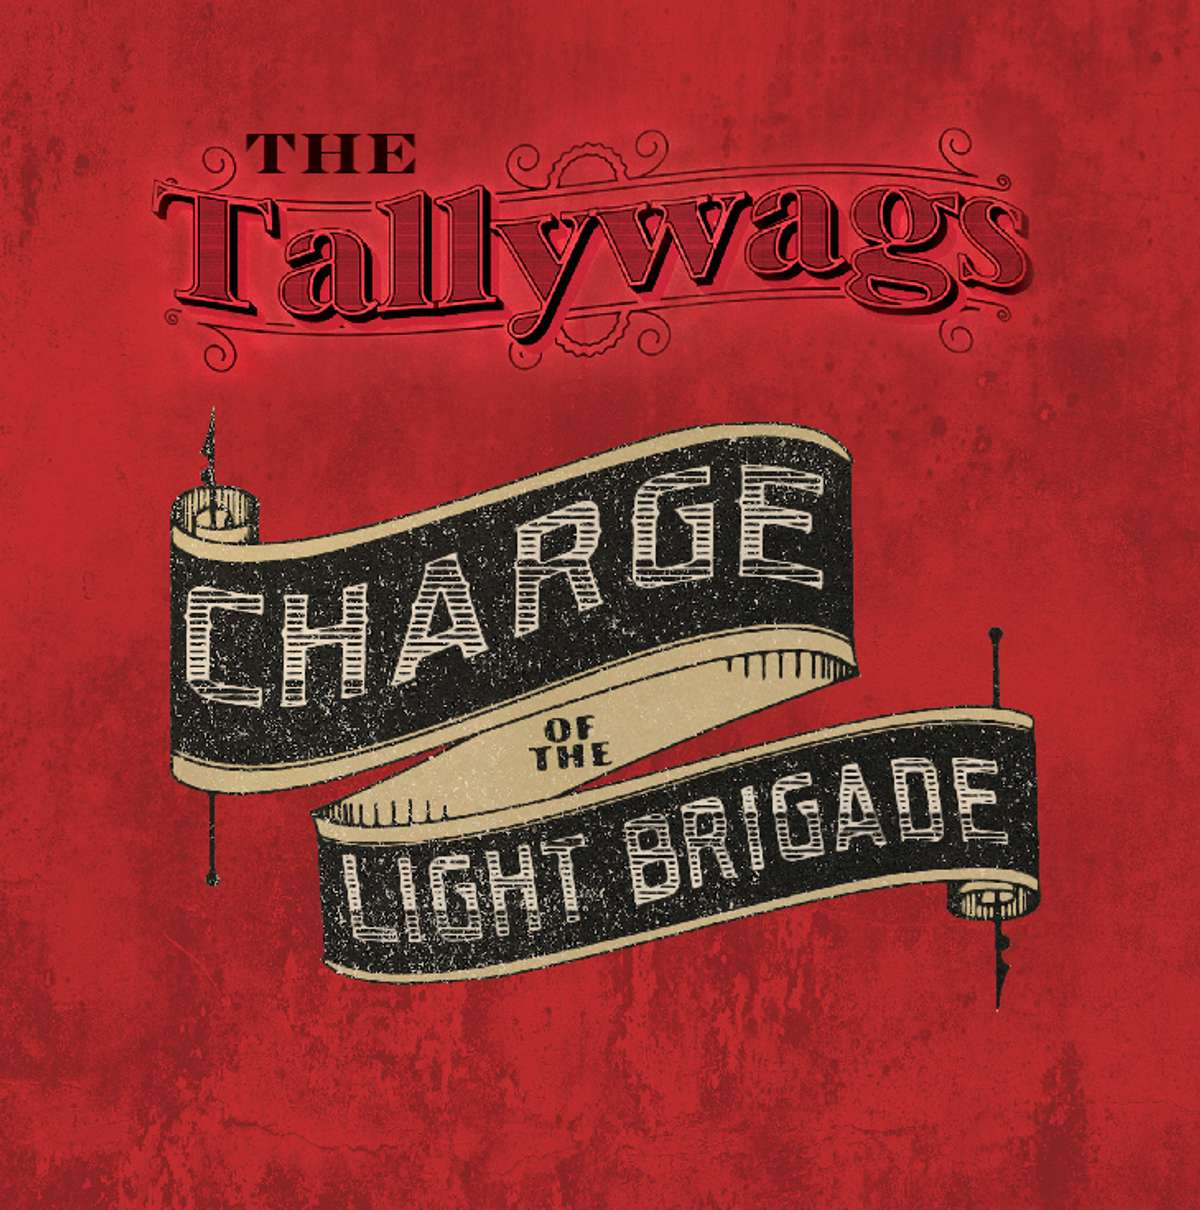 The Tallywags - Charge Of The Light Brigade - CD Single - Barrel And Squidger Records